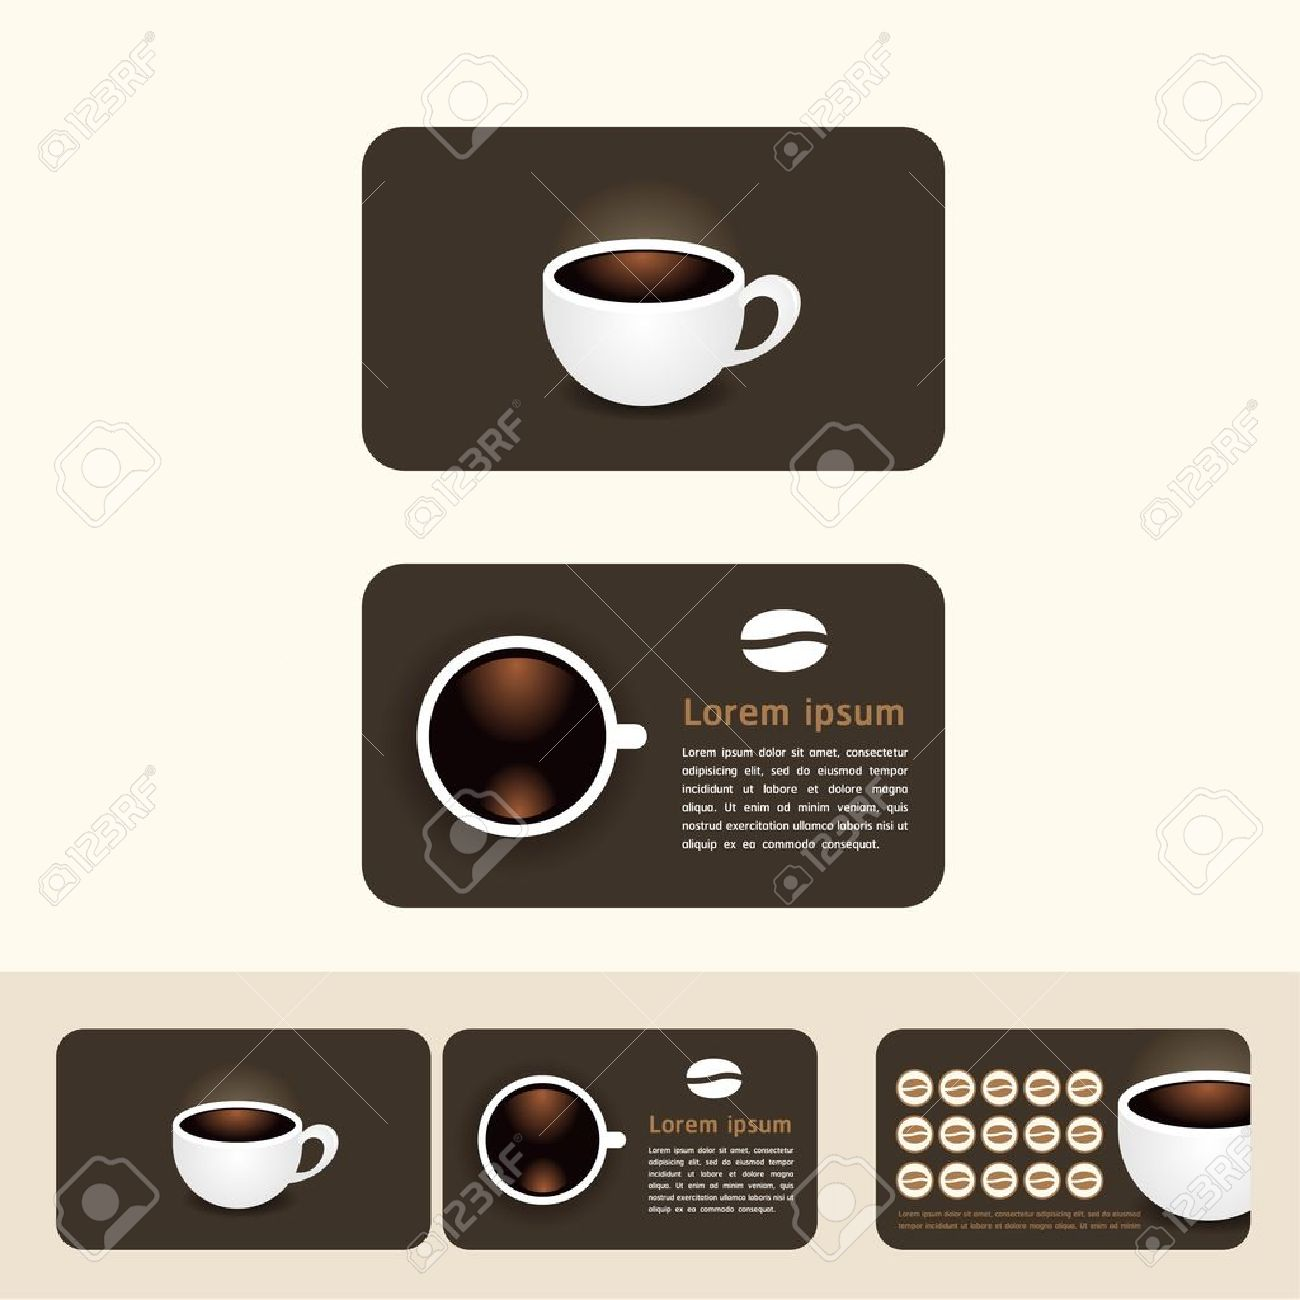 Coffee Business Cards, Discount And Promotional Cards Royalty Free ...